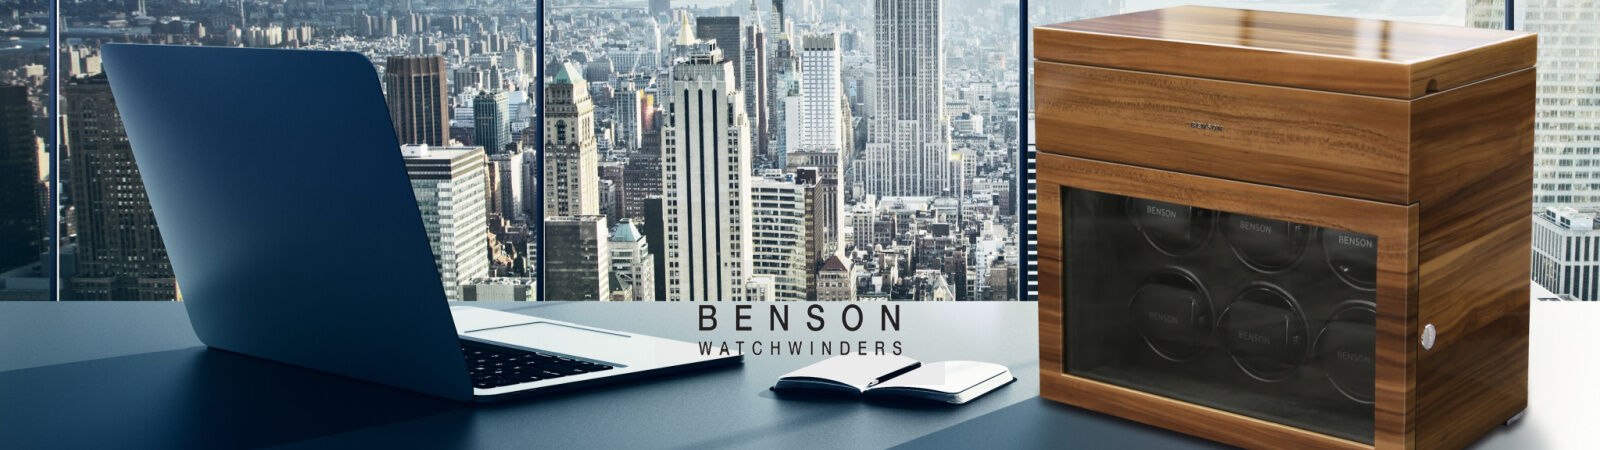 Benson Watch Winders available at sportique.com